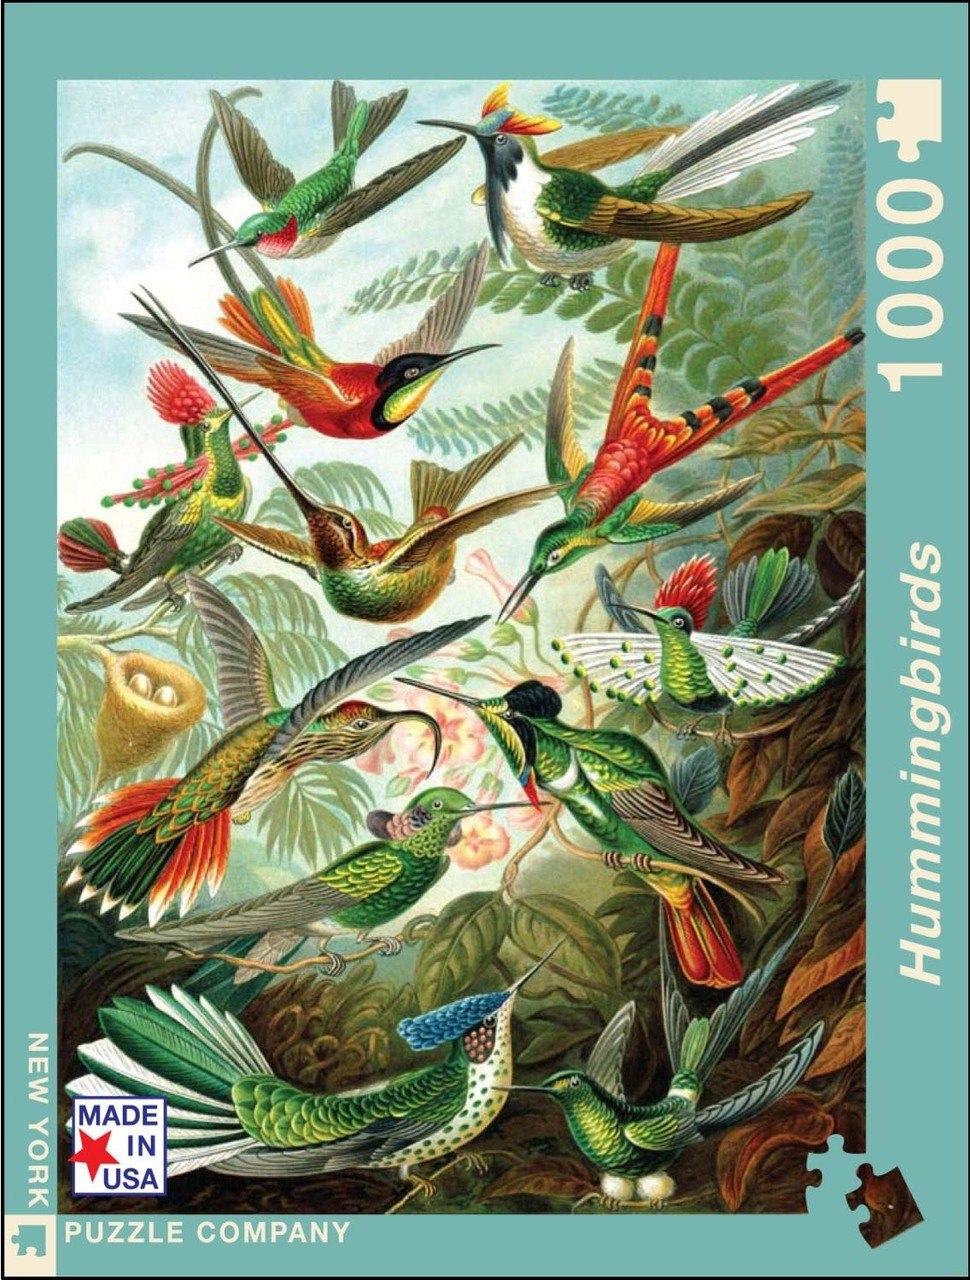 Hummingbirds - 1000pc Jigsaw Puzzle by New York Puzzle Company